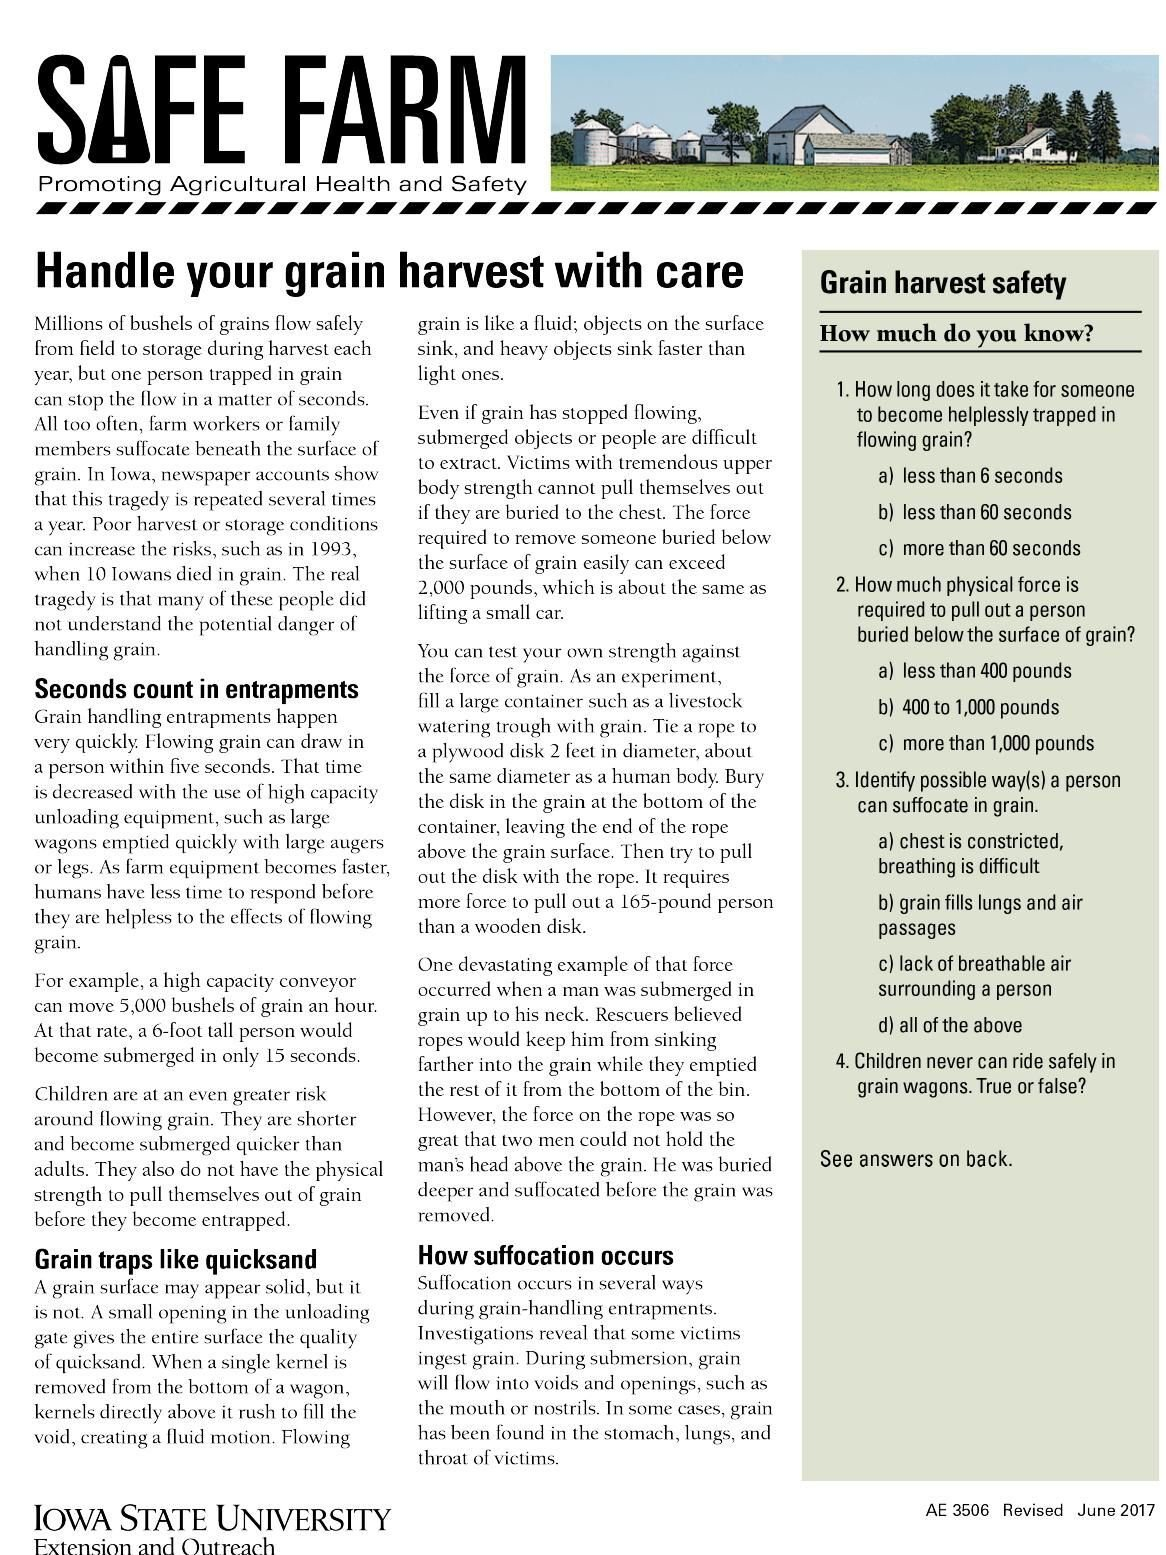 Handle grain harvest with care part 1